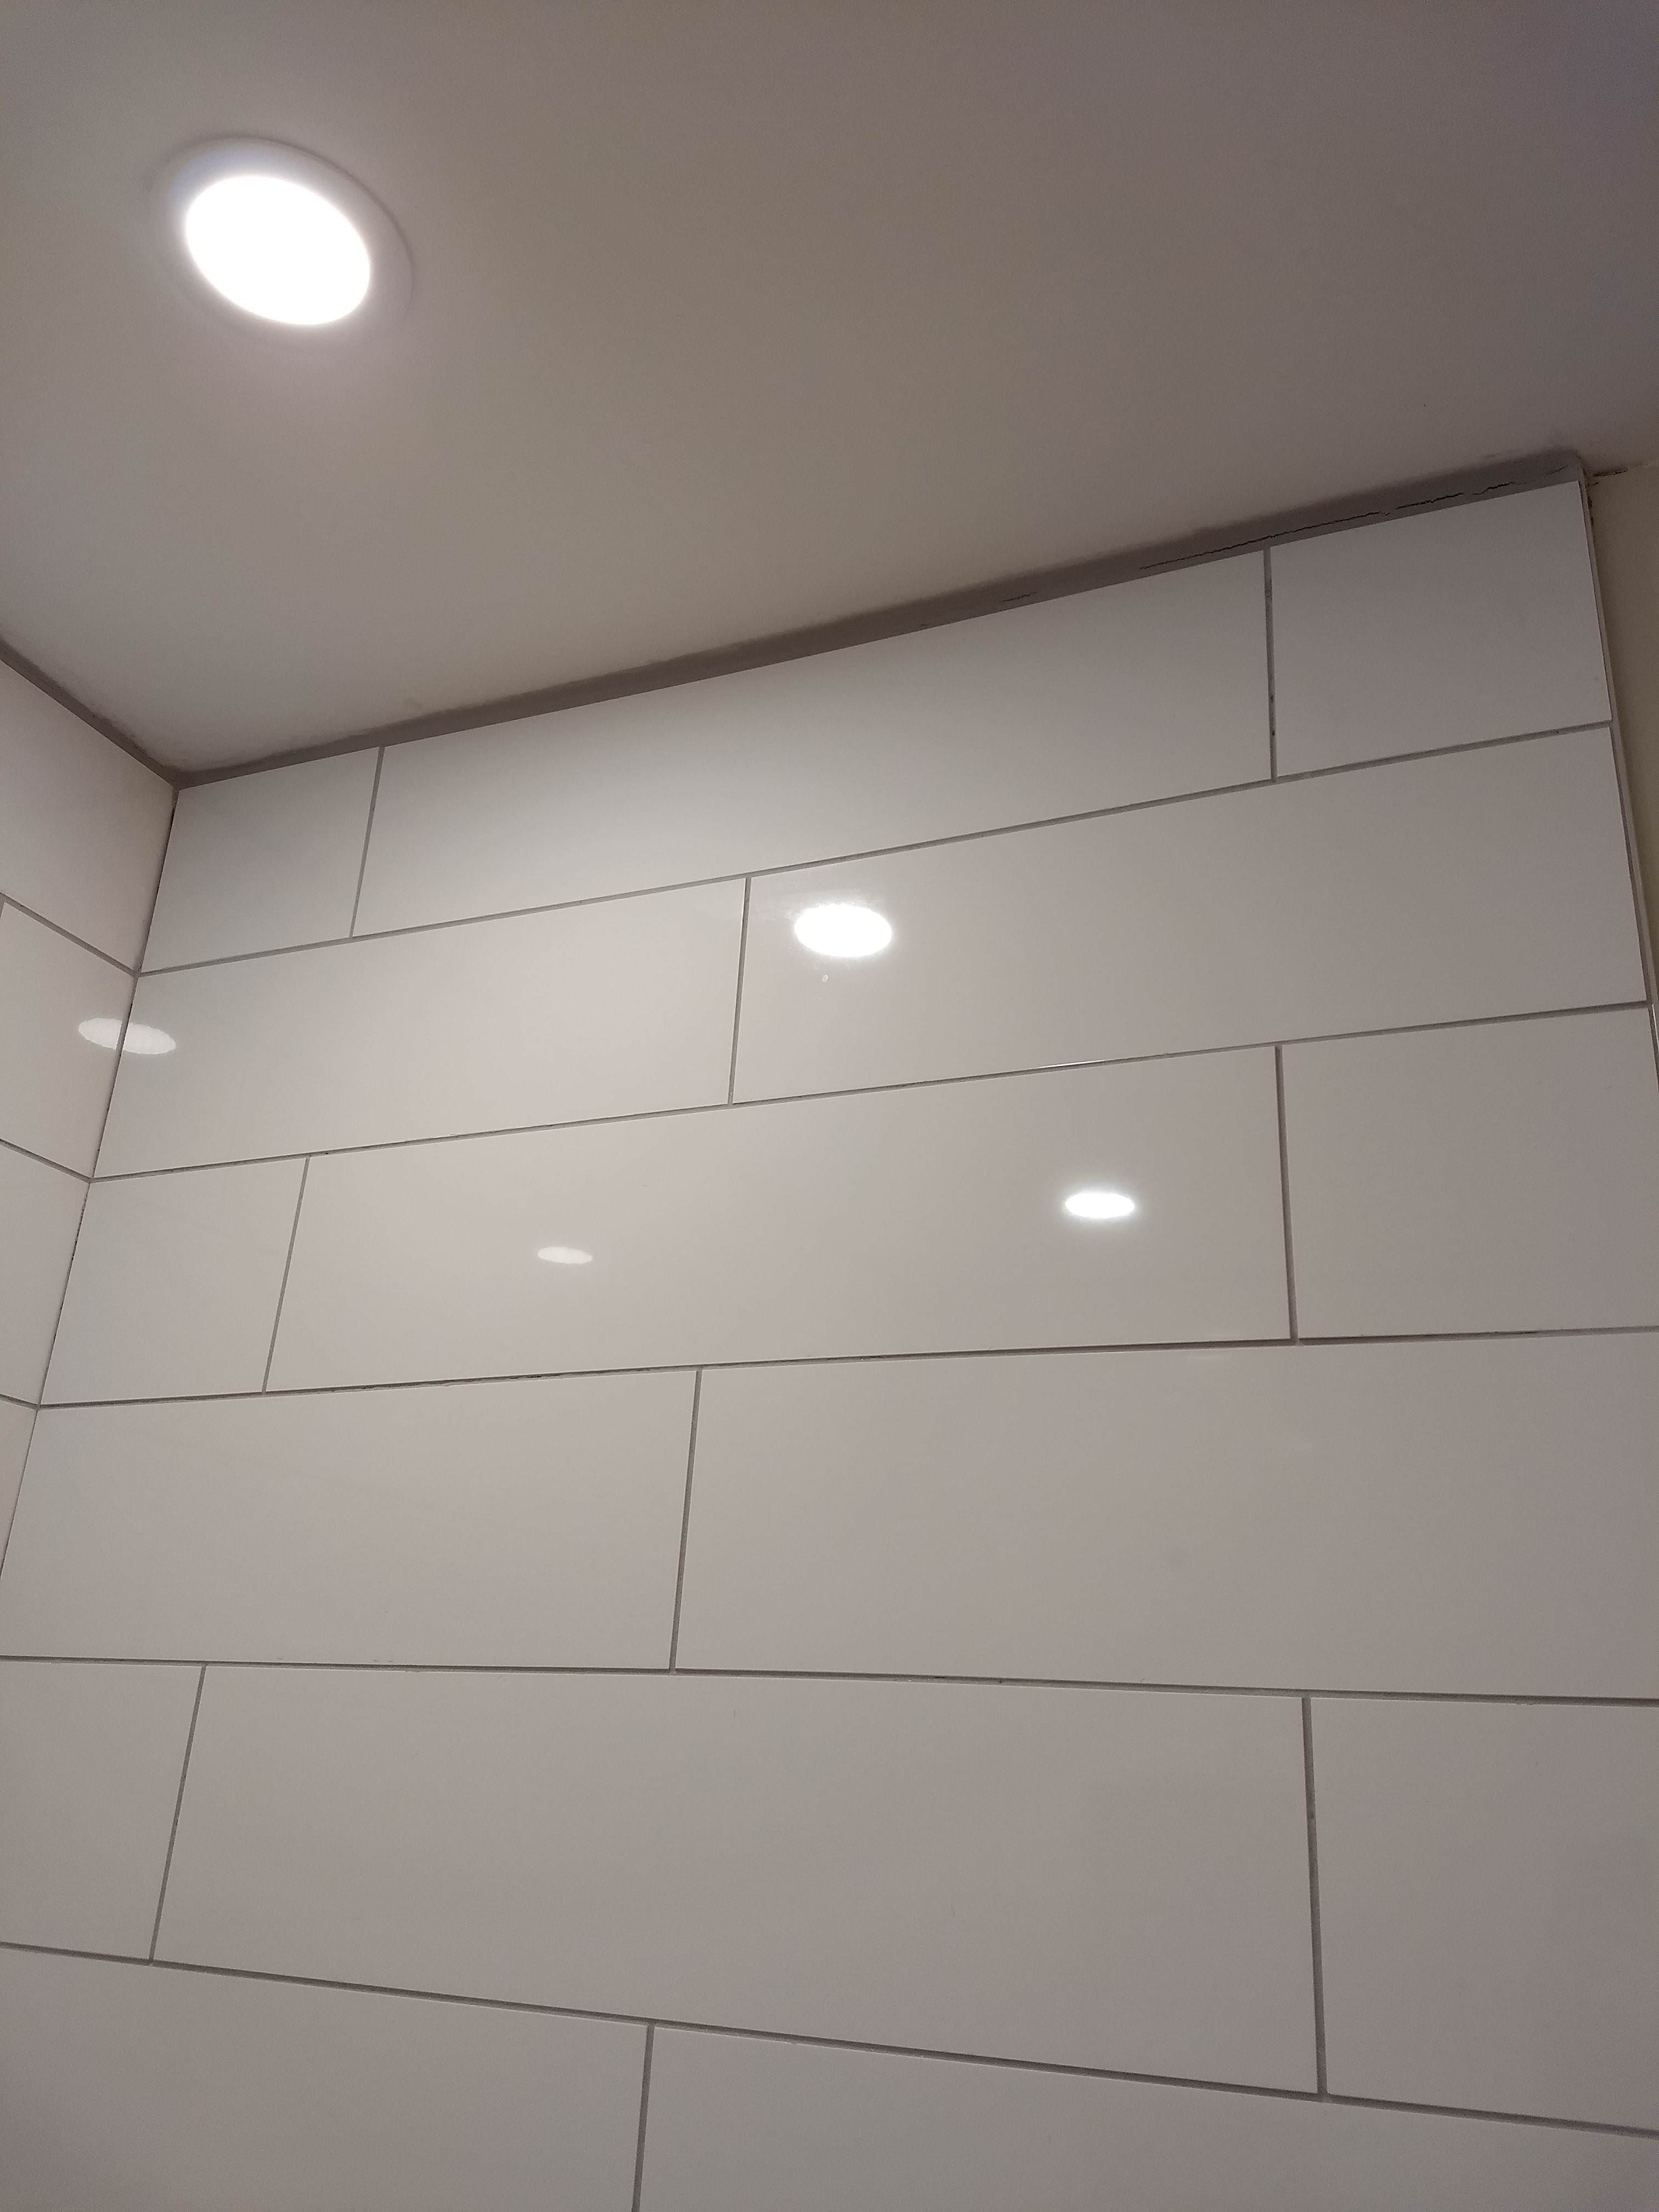 We Intended To Tile Our Shower To The Ceiling But We Didn T Plan It Right And We Left A 3 4 Gap Between The Last Tile Shower Ceilings Ceiling Trim Shower Tile